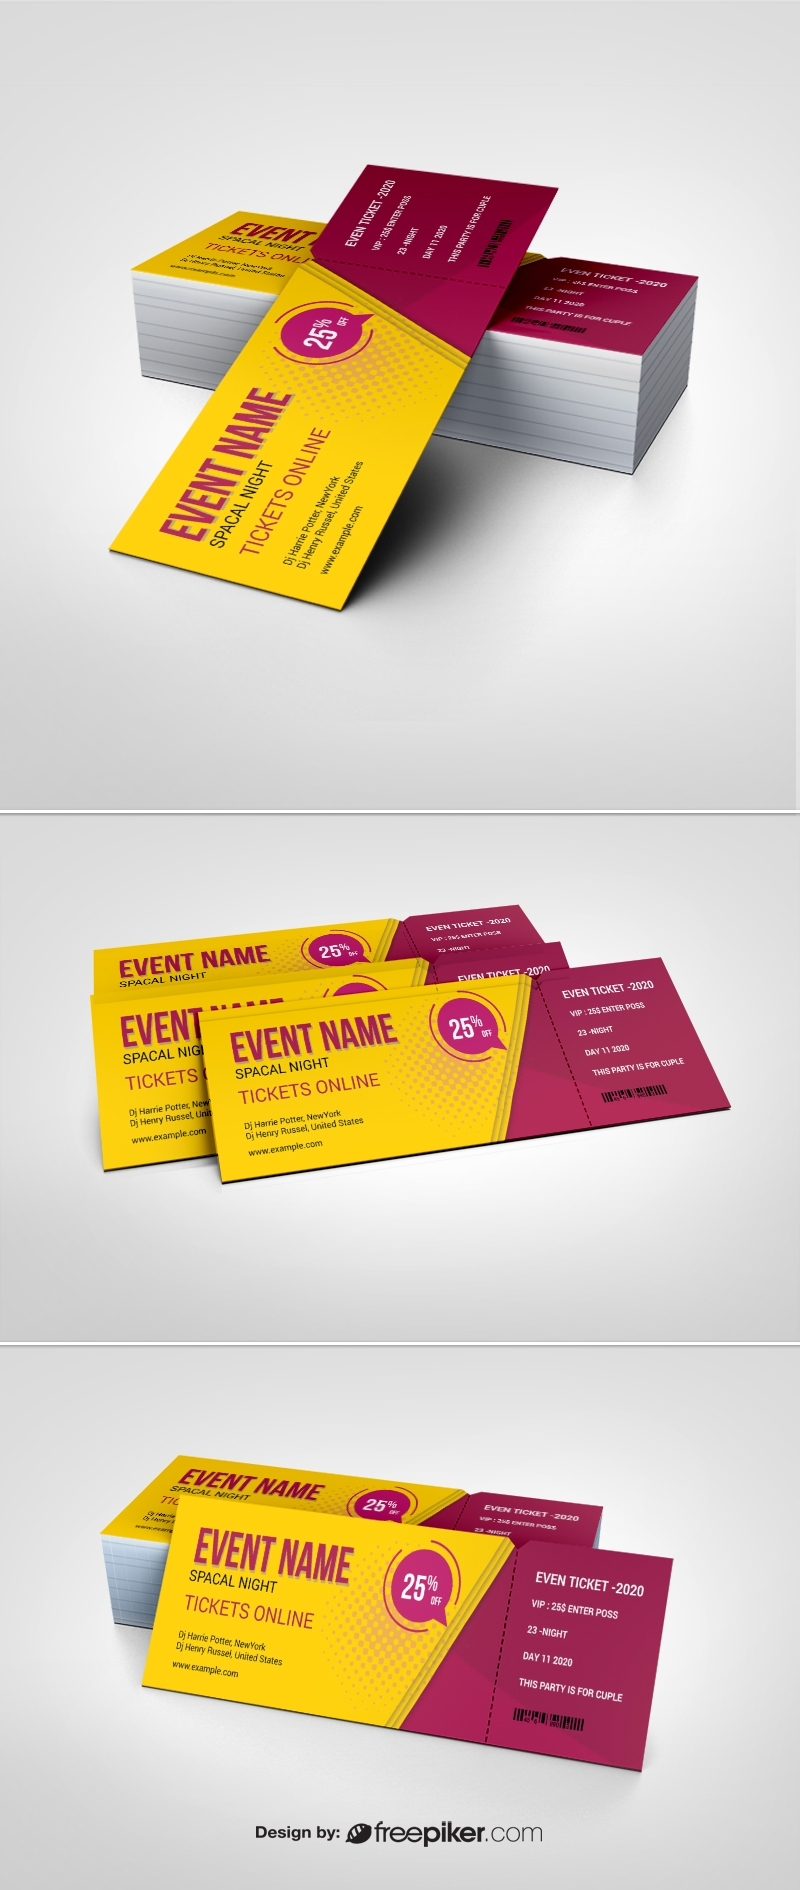 Event Ticket With Yellow And Red Accent